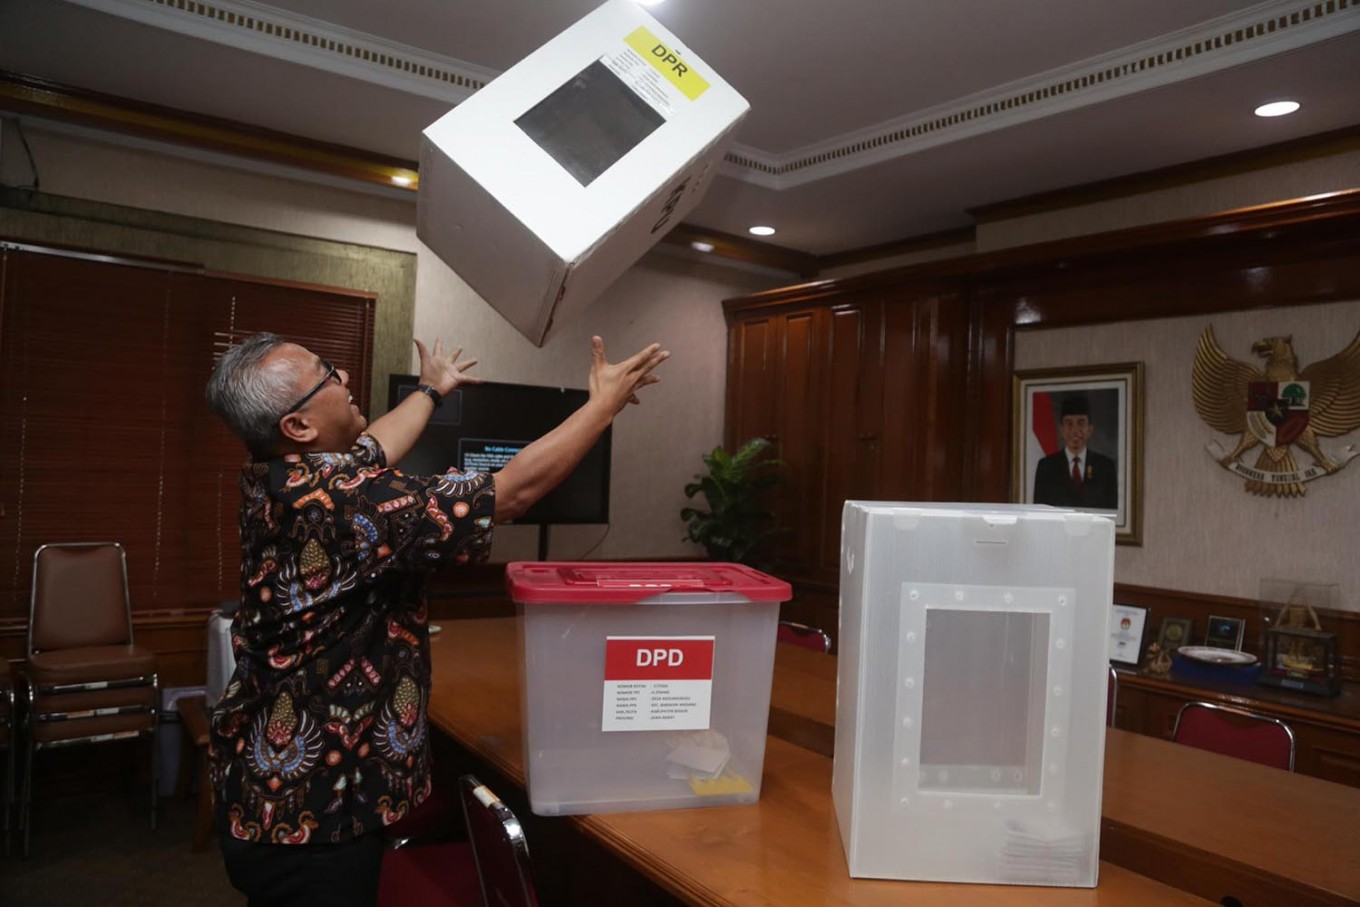 Former corruption convicts barred from participating in 2019 election